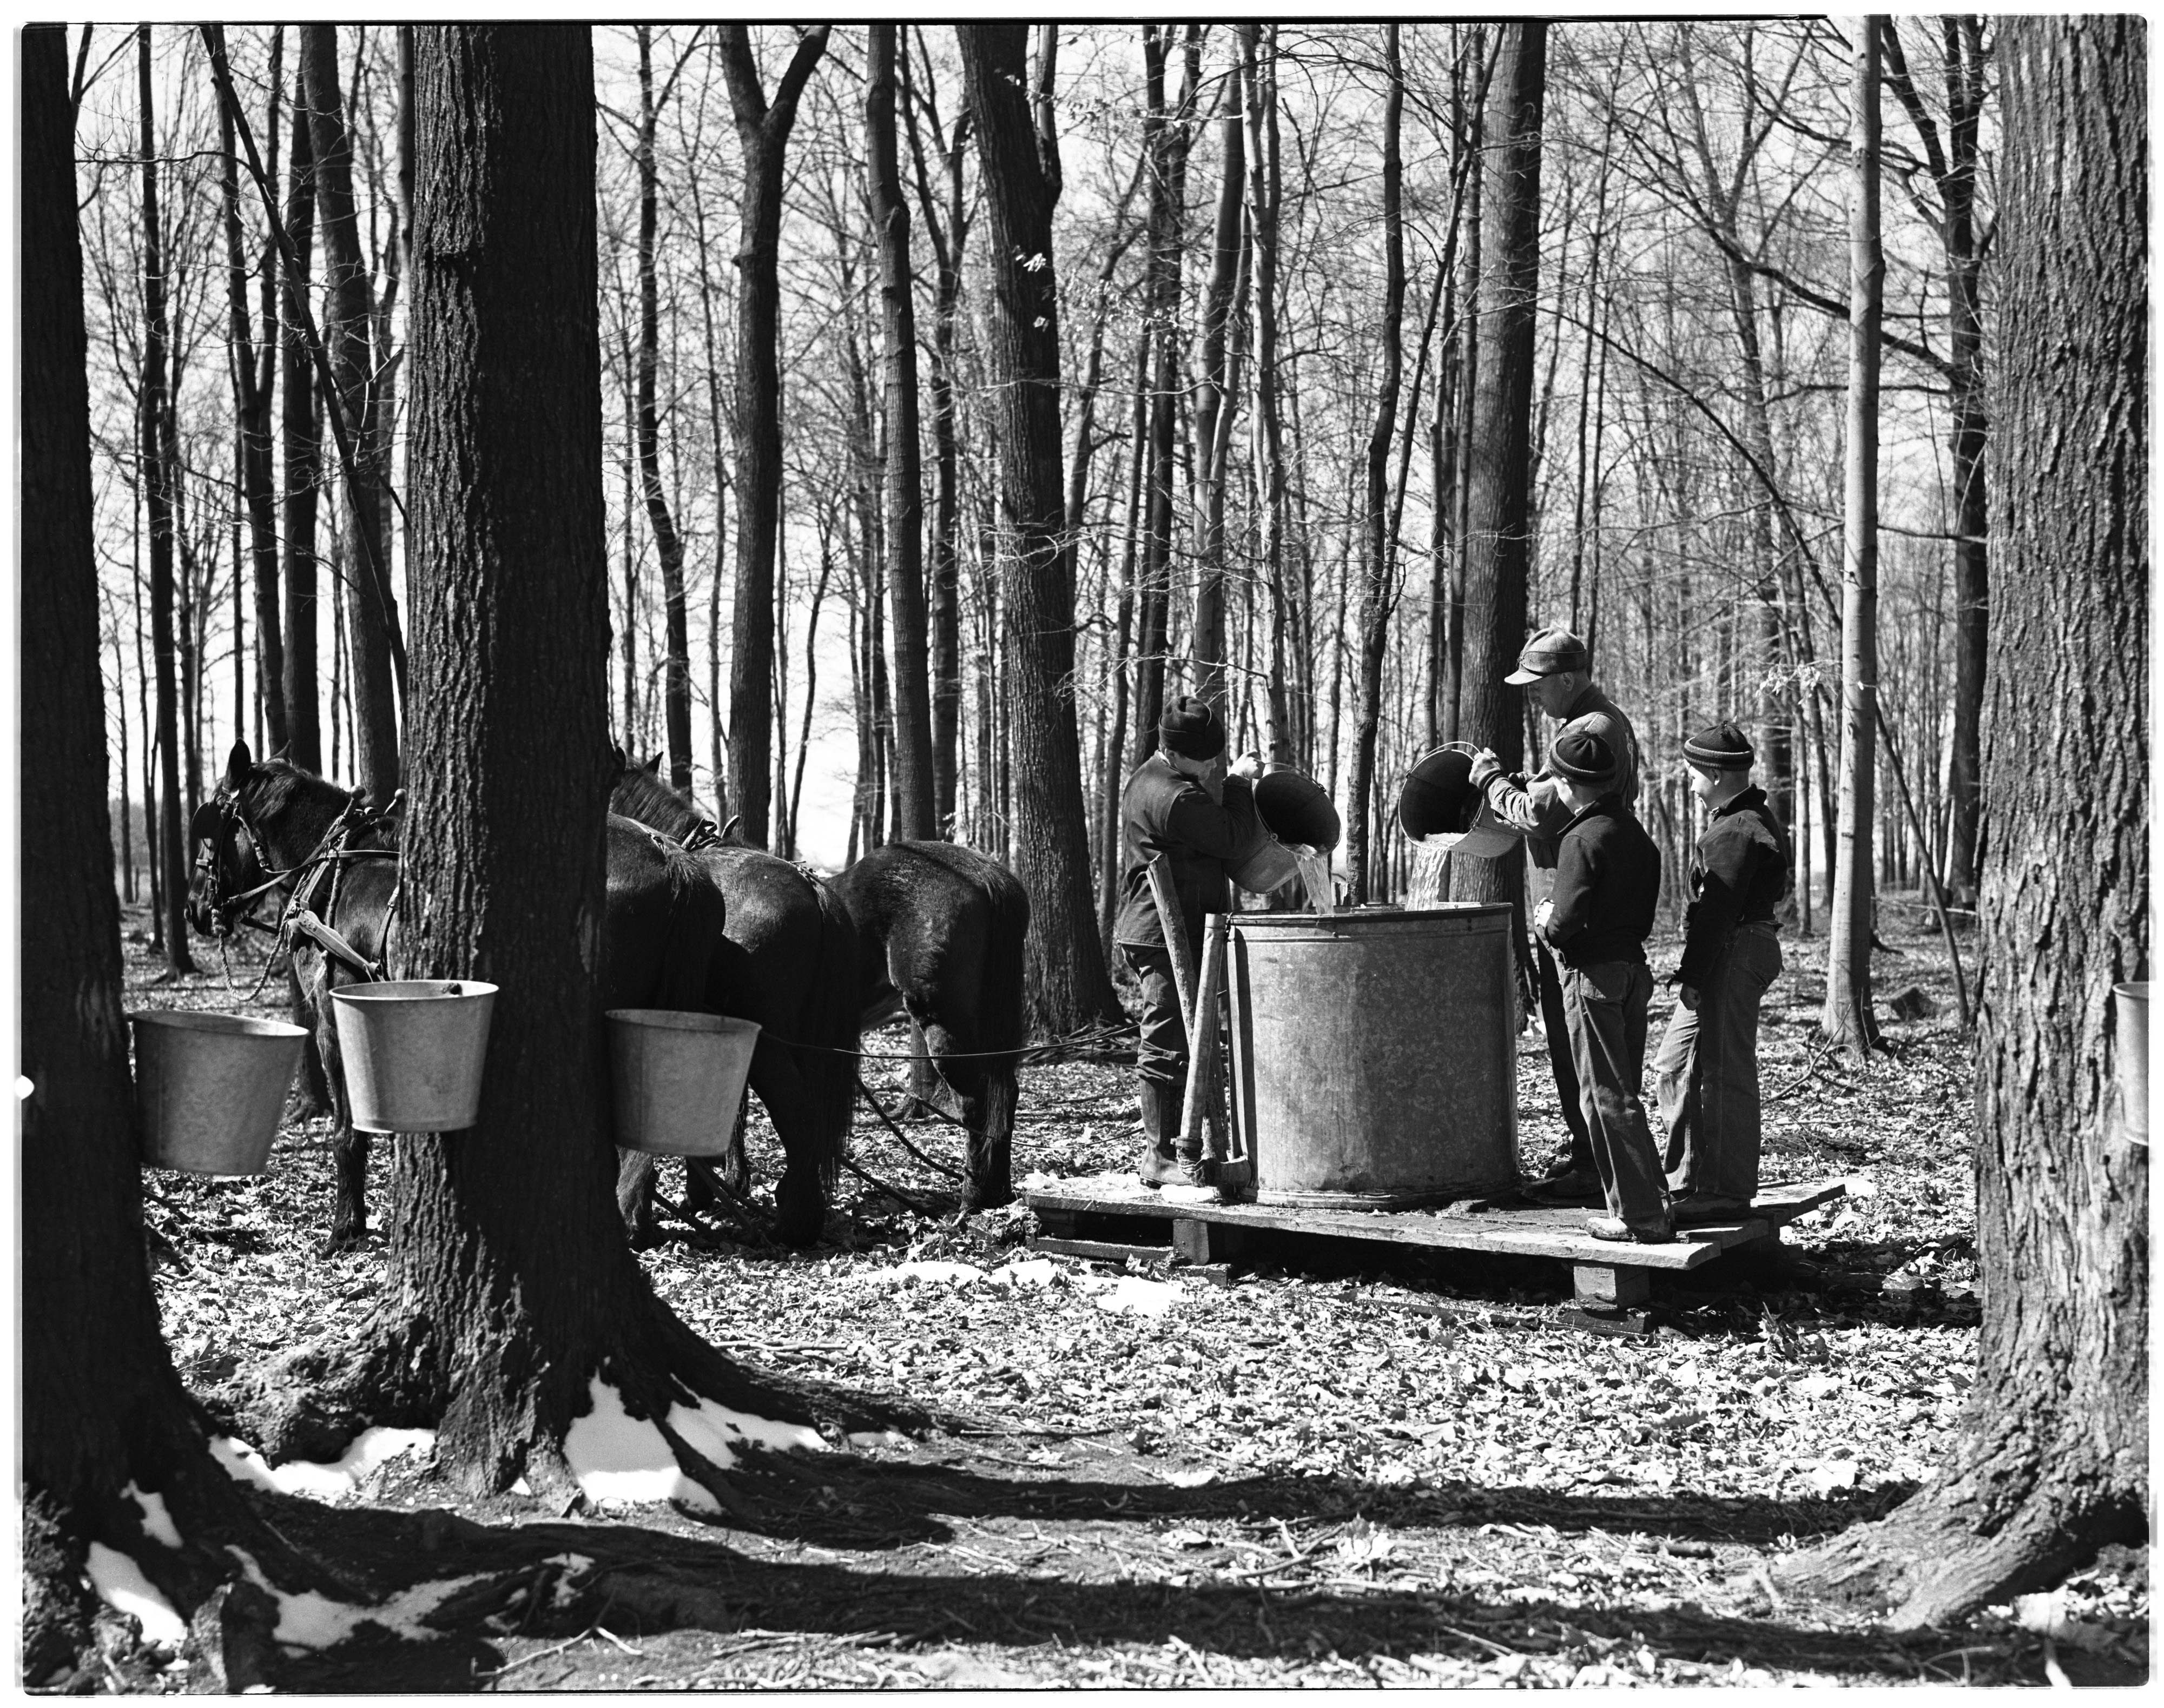 Harvesting Sap for Maple Syrup, Milan image